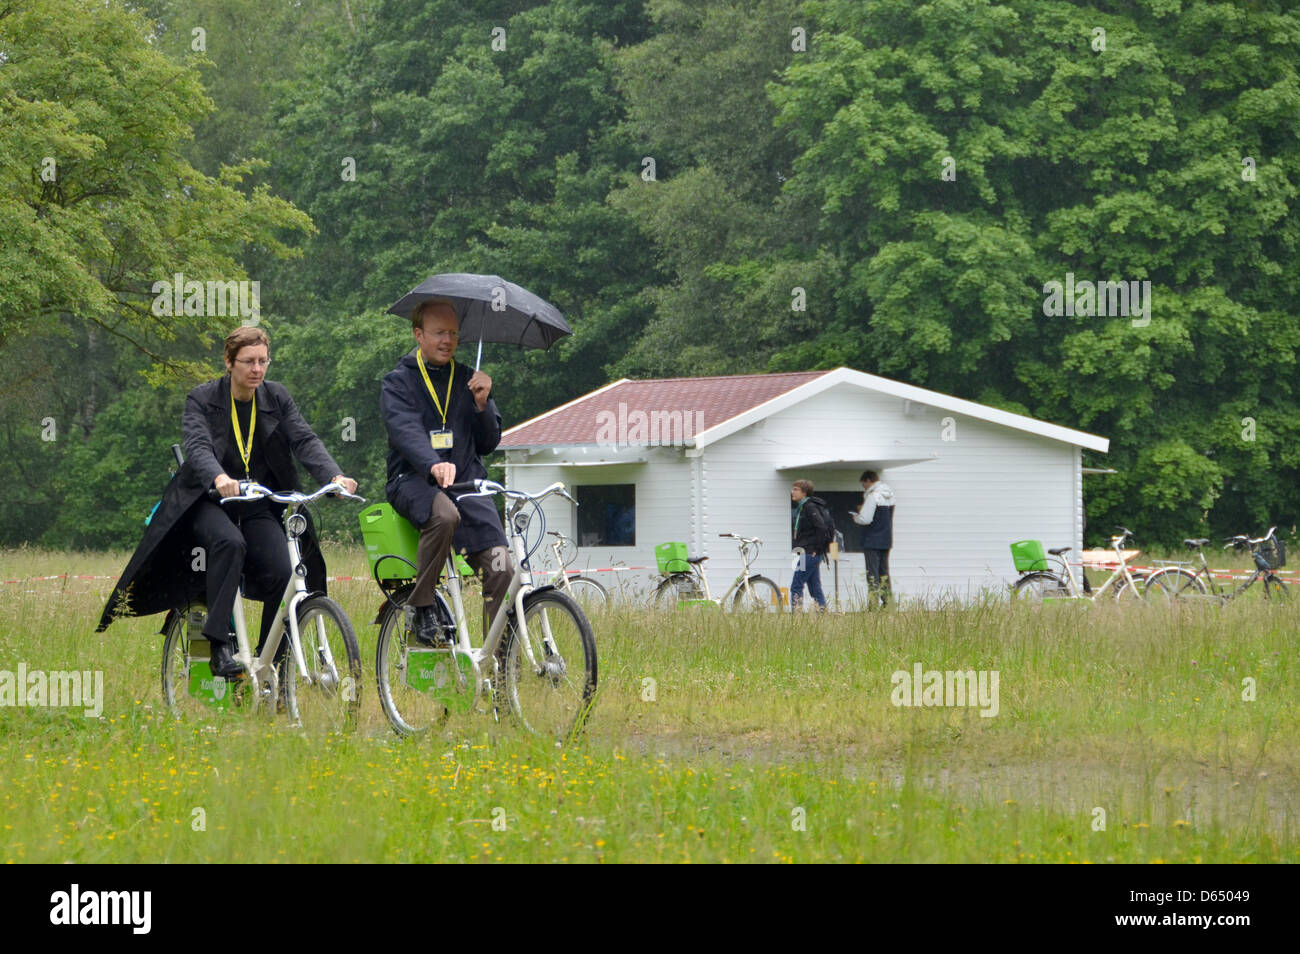 Visitors go past an artists' hut at the documenta art exhibiton in Kassel, Germany, 07 June 2012. - Stock Image